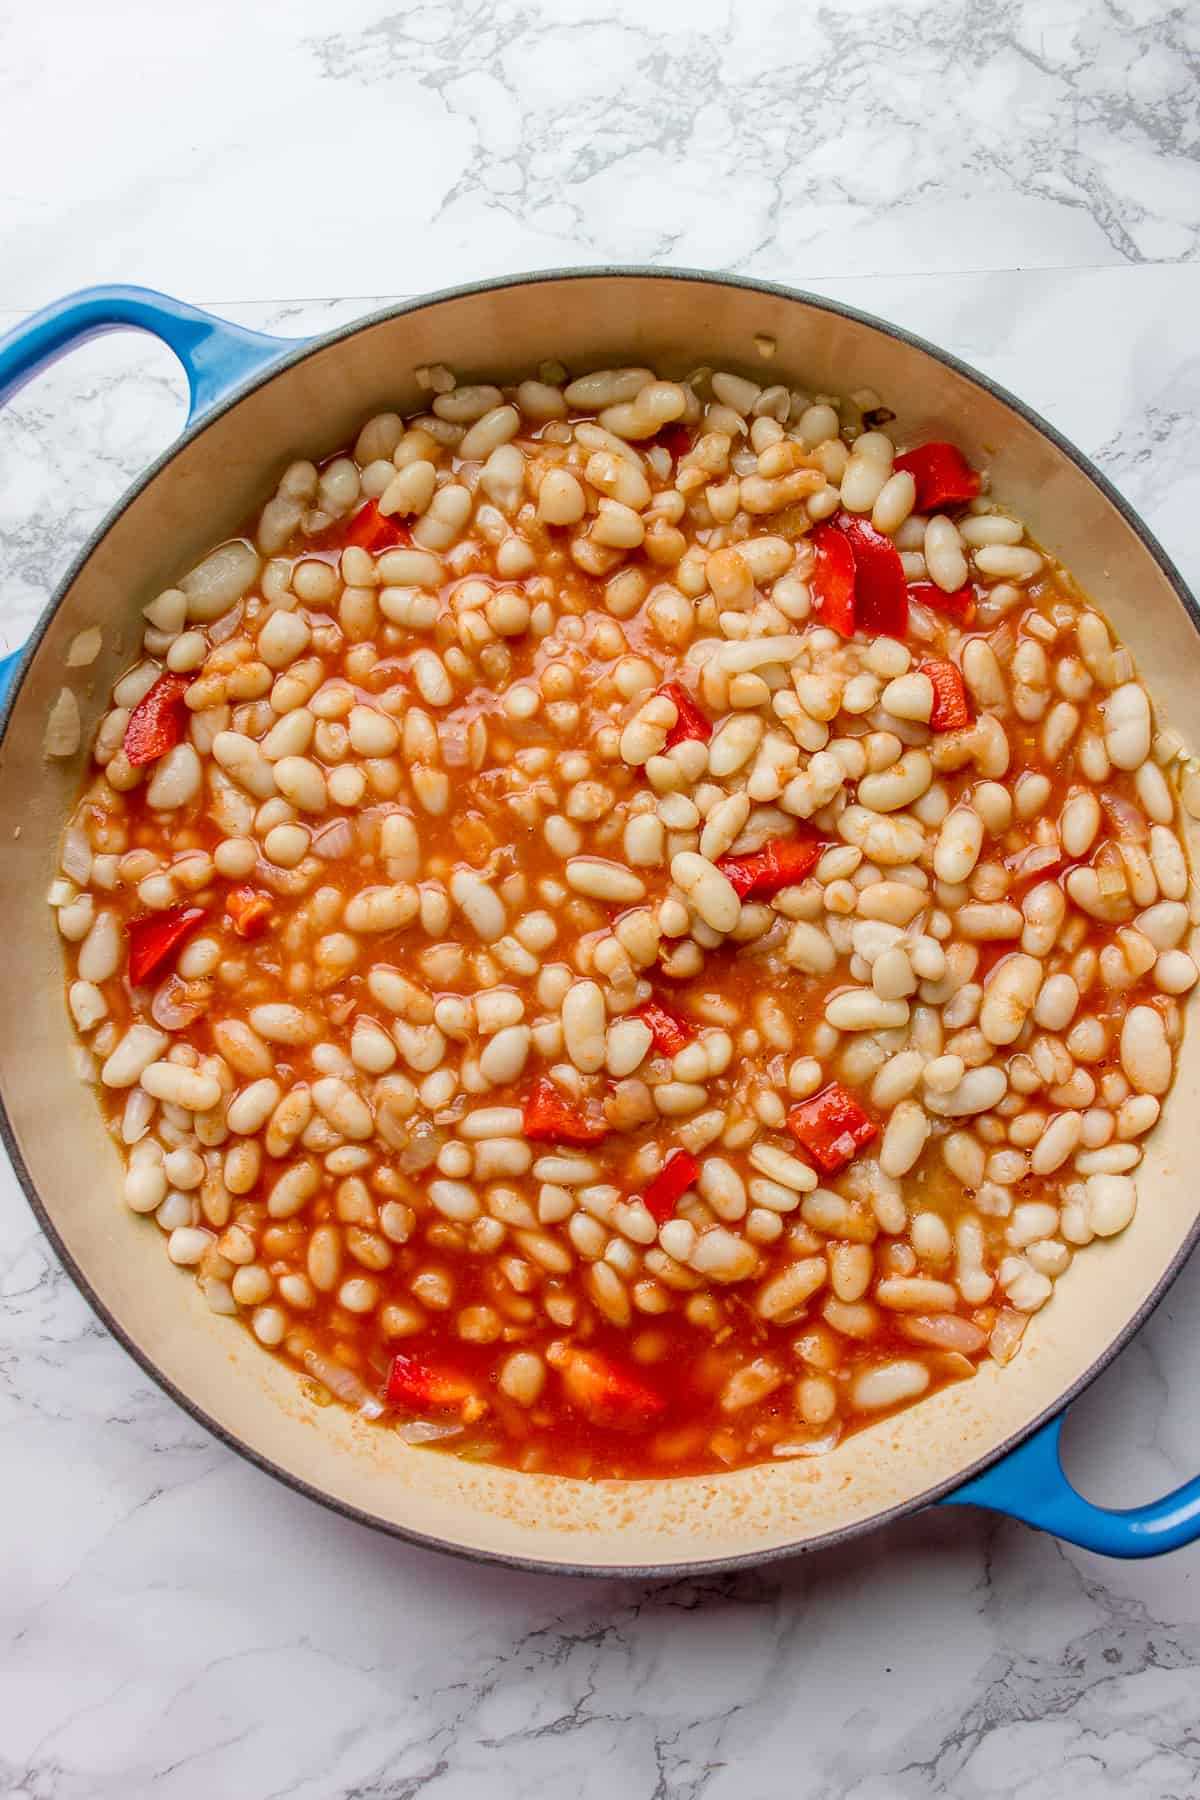 Adding tomatoes and bell peppers to a pot with cooked beans